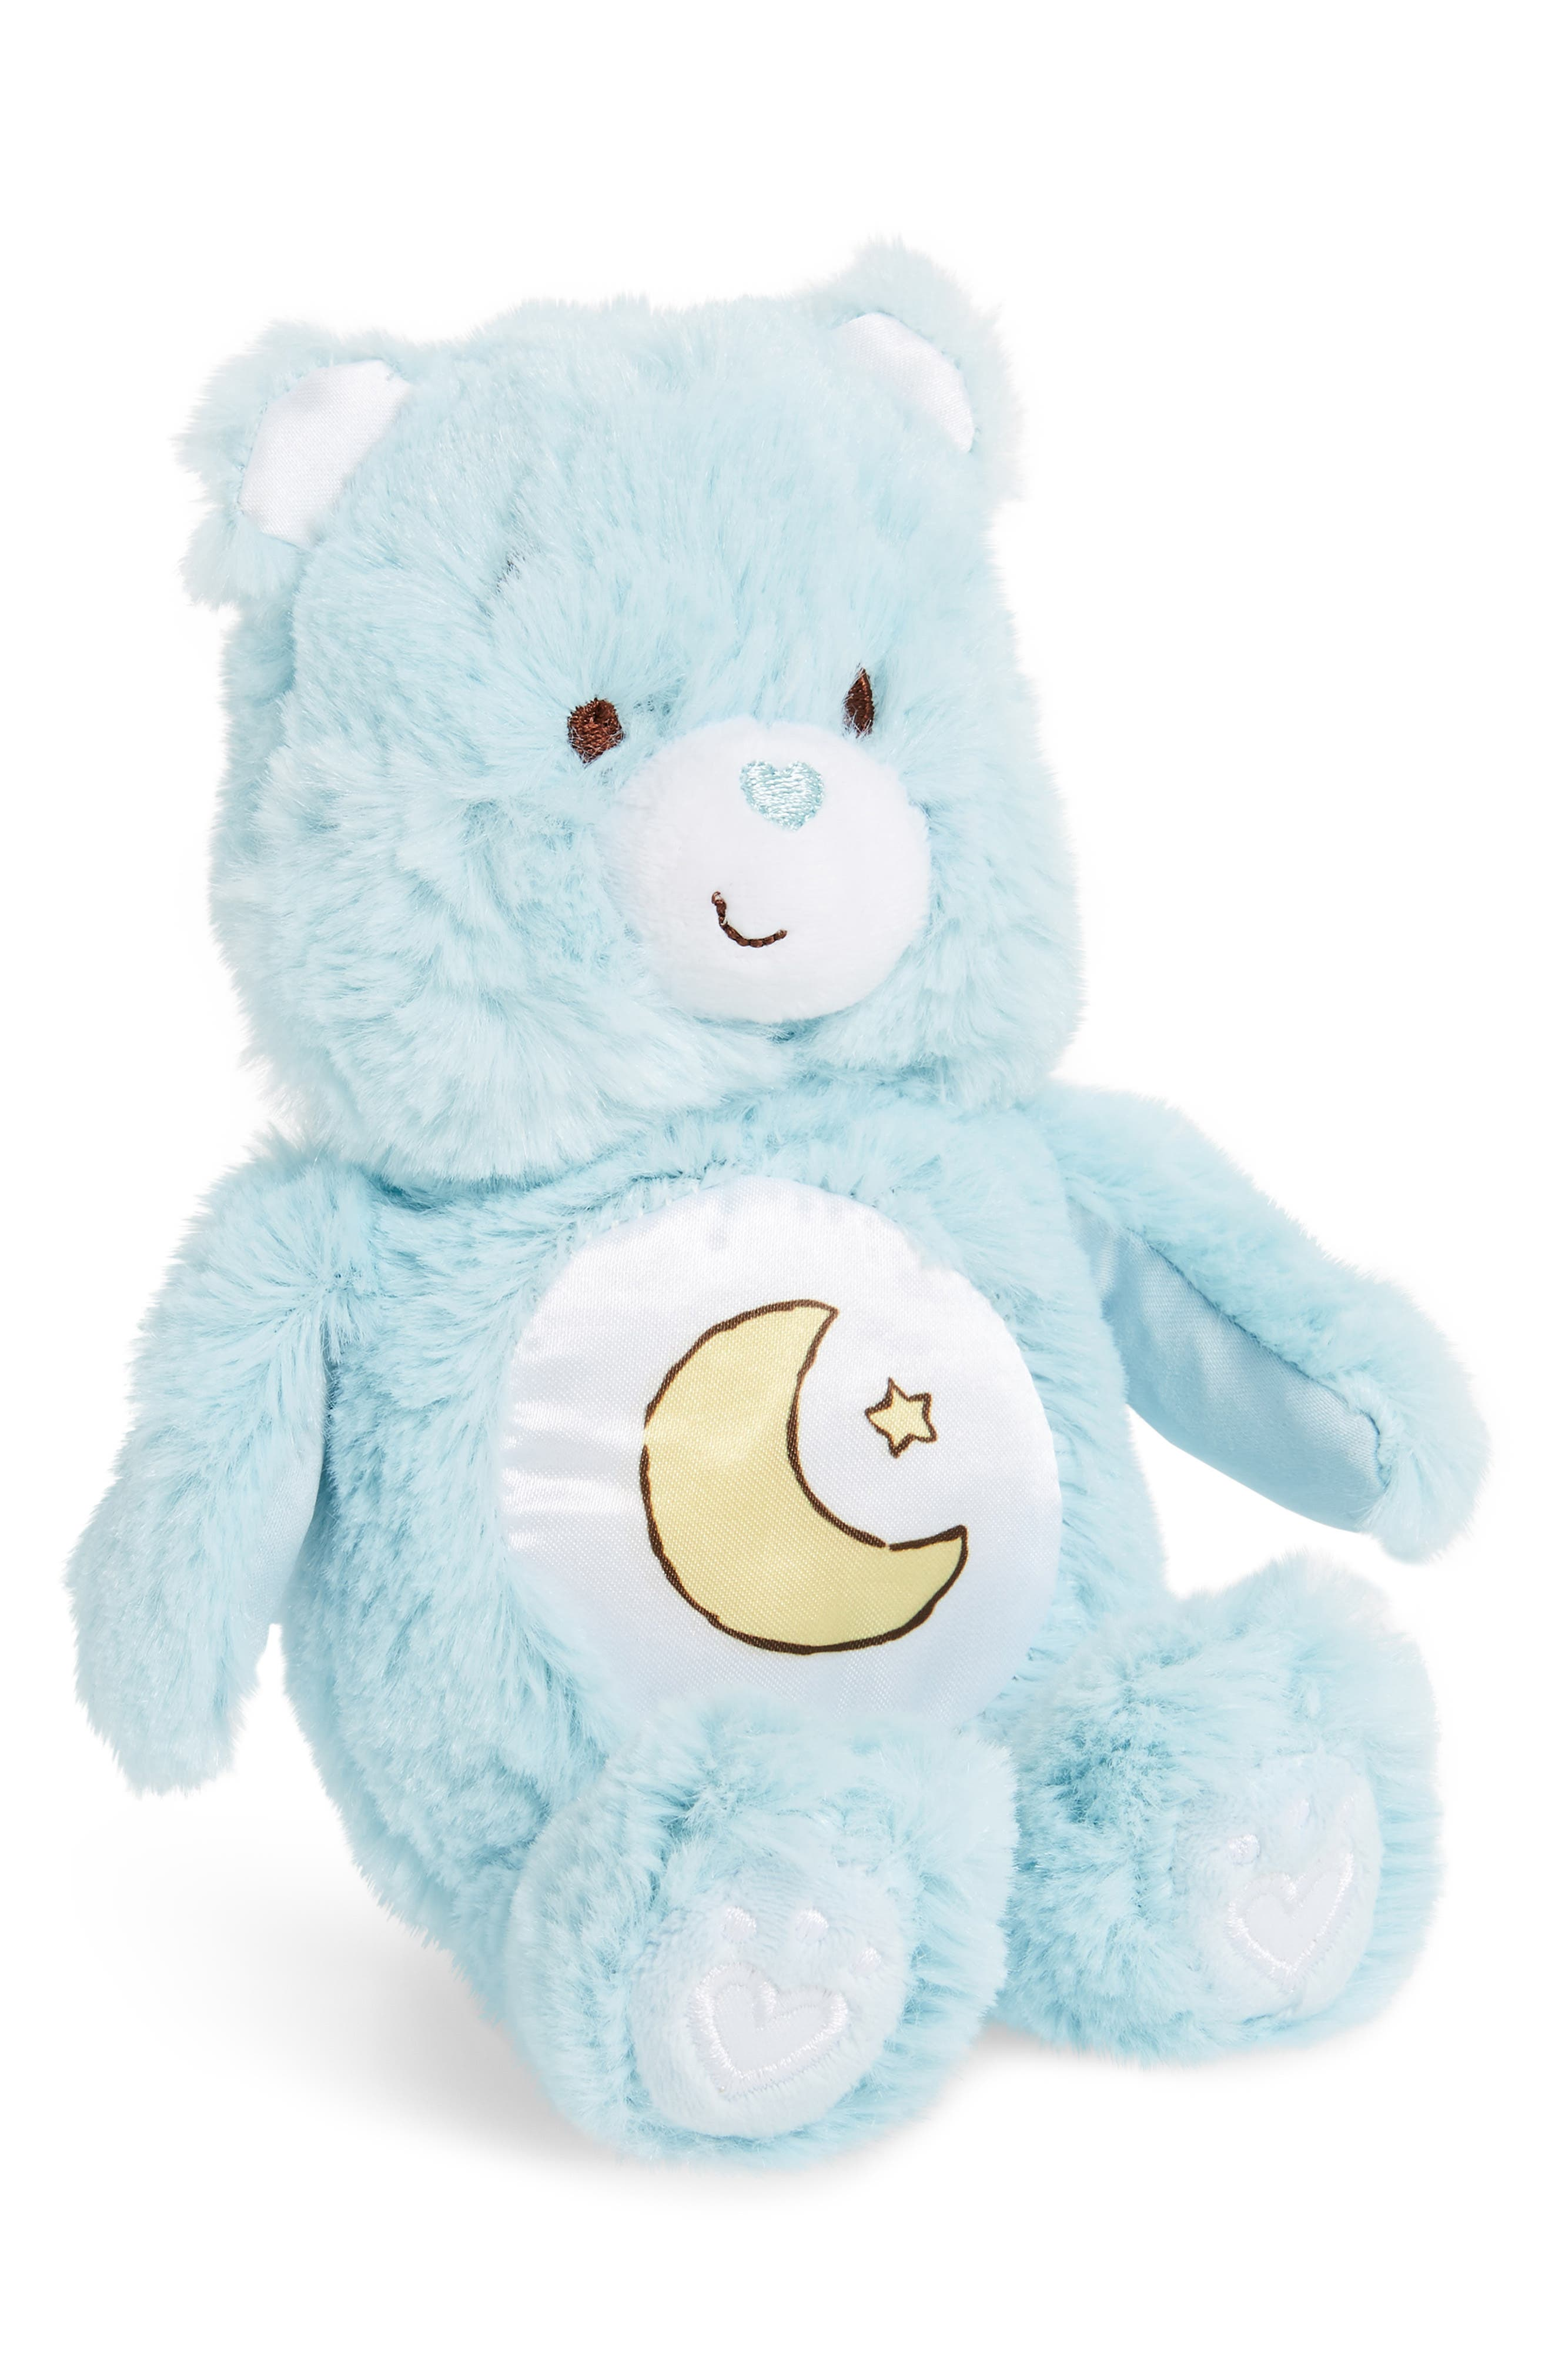 KIDS PREFERRED Care Bears<sup>™</sup> Bedtime Bear Stuffed Animal, Main, color, 400